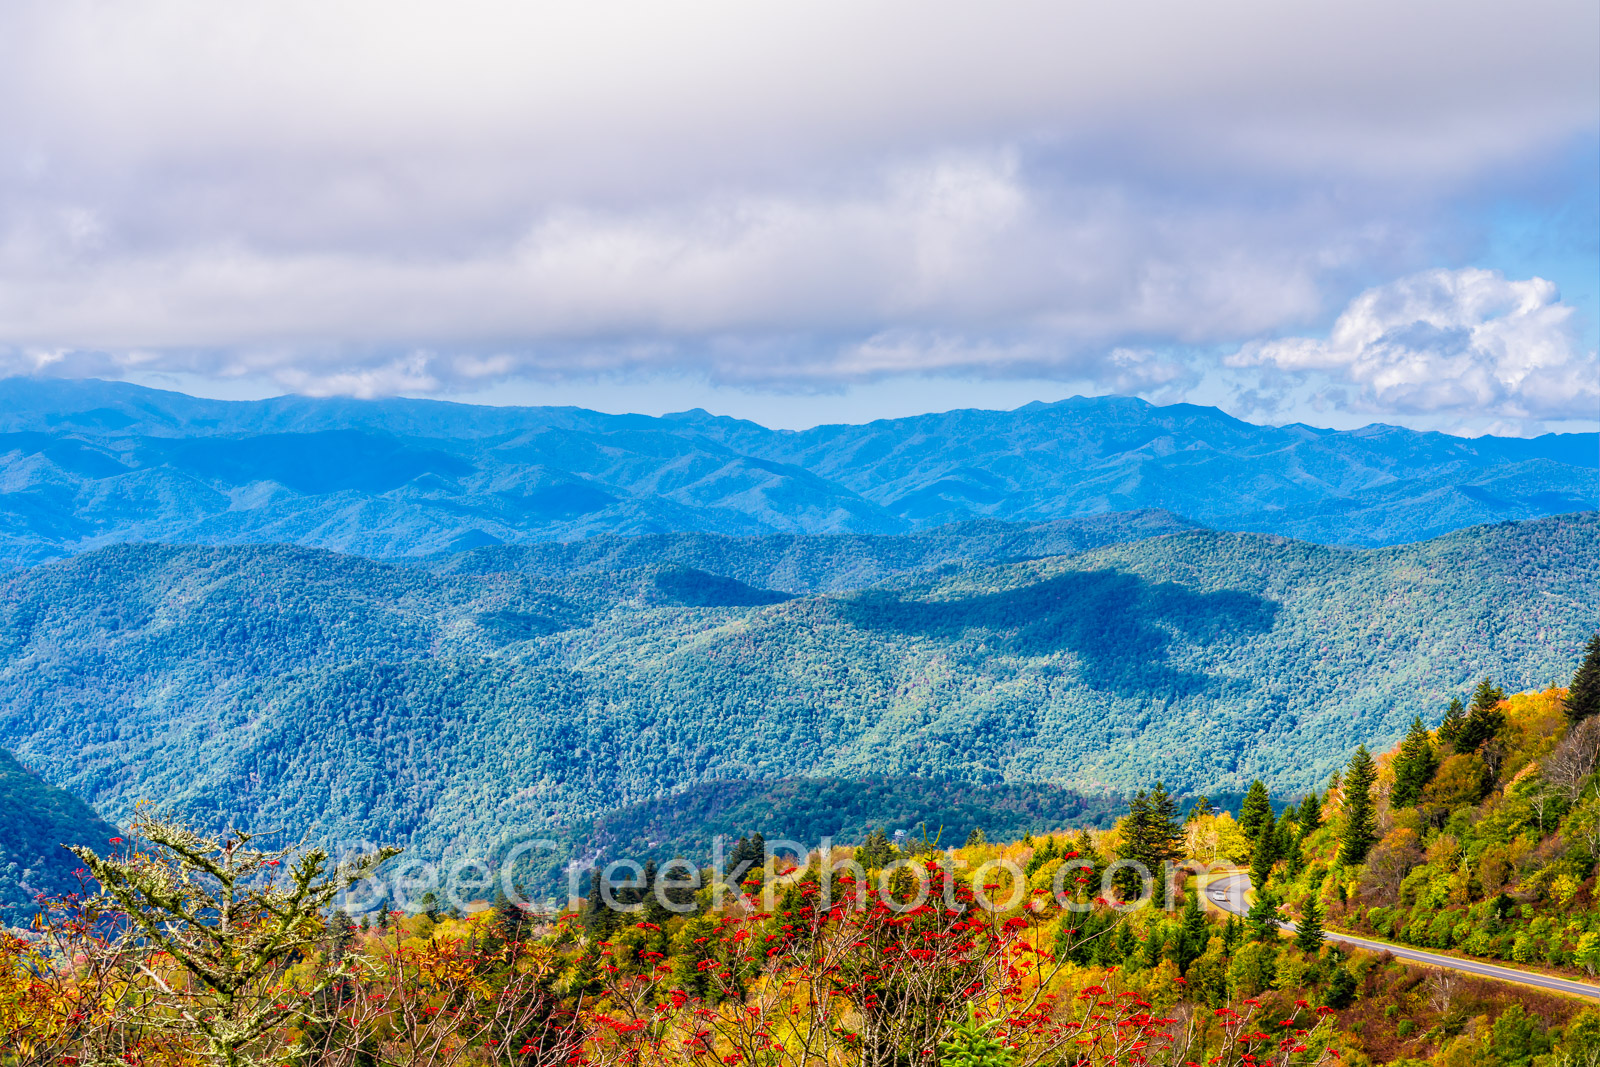 Blue Ridge Parkway Vista - Blue Ridge Parkway vista in the Smoky Mountain in fall was a spectacular site to see. The colorful...